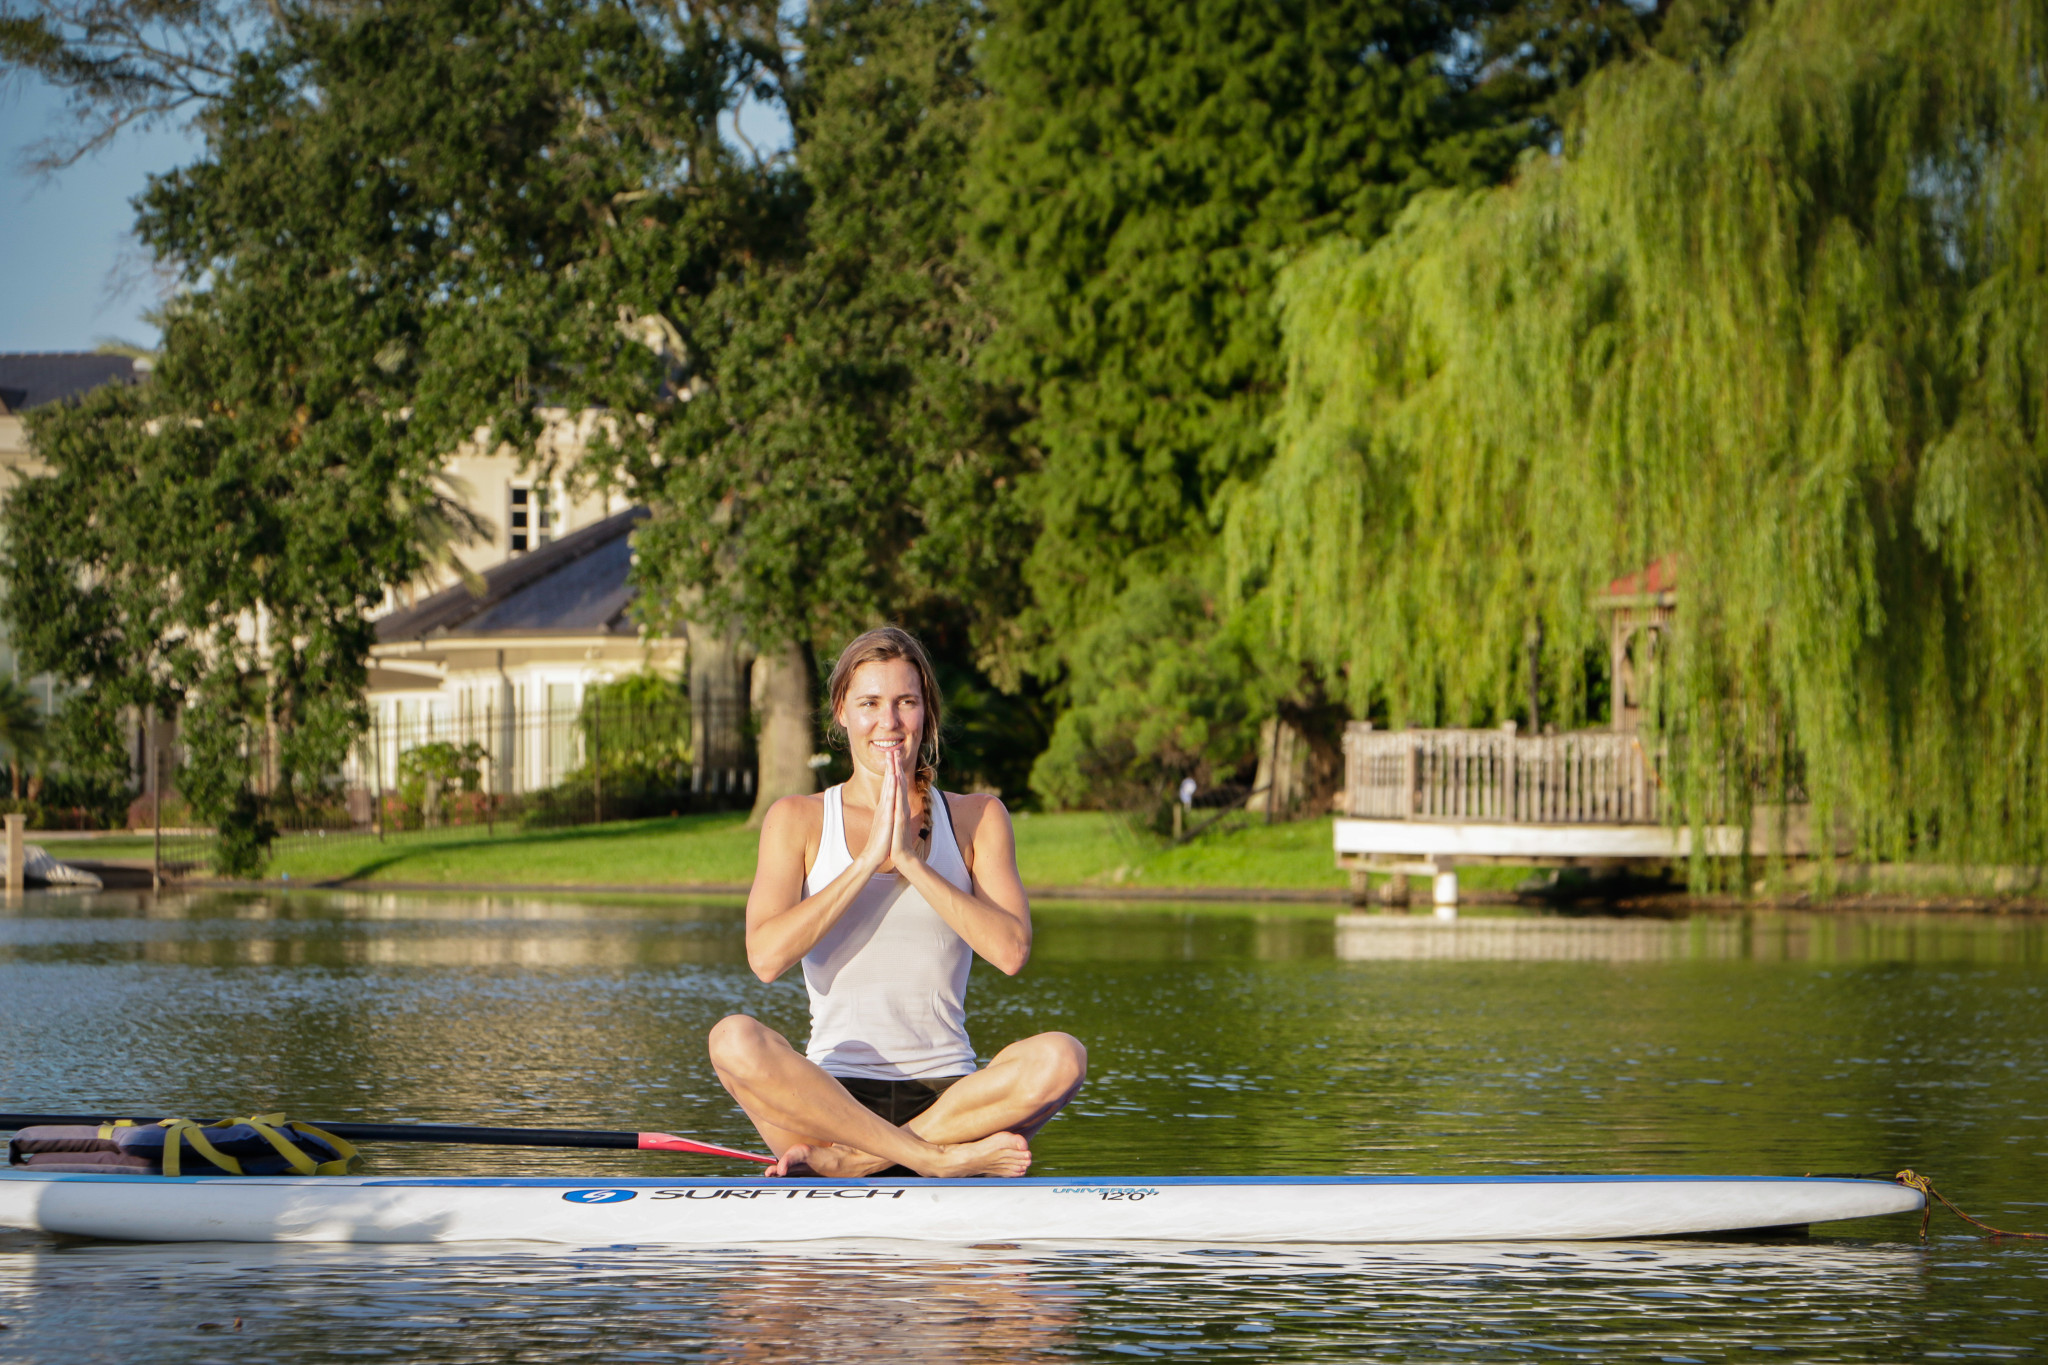 Each SUP yoga class begins with a tranquil warm-up paddle. (Photo: Rebecca Ratliff)